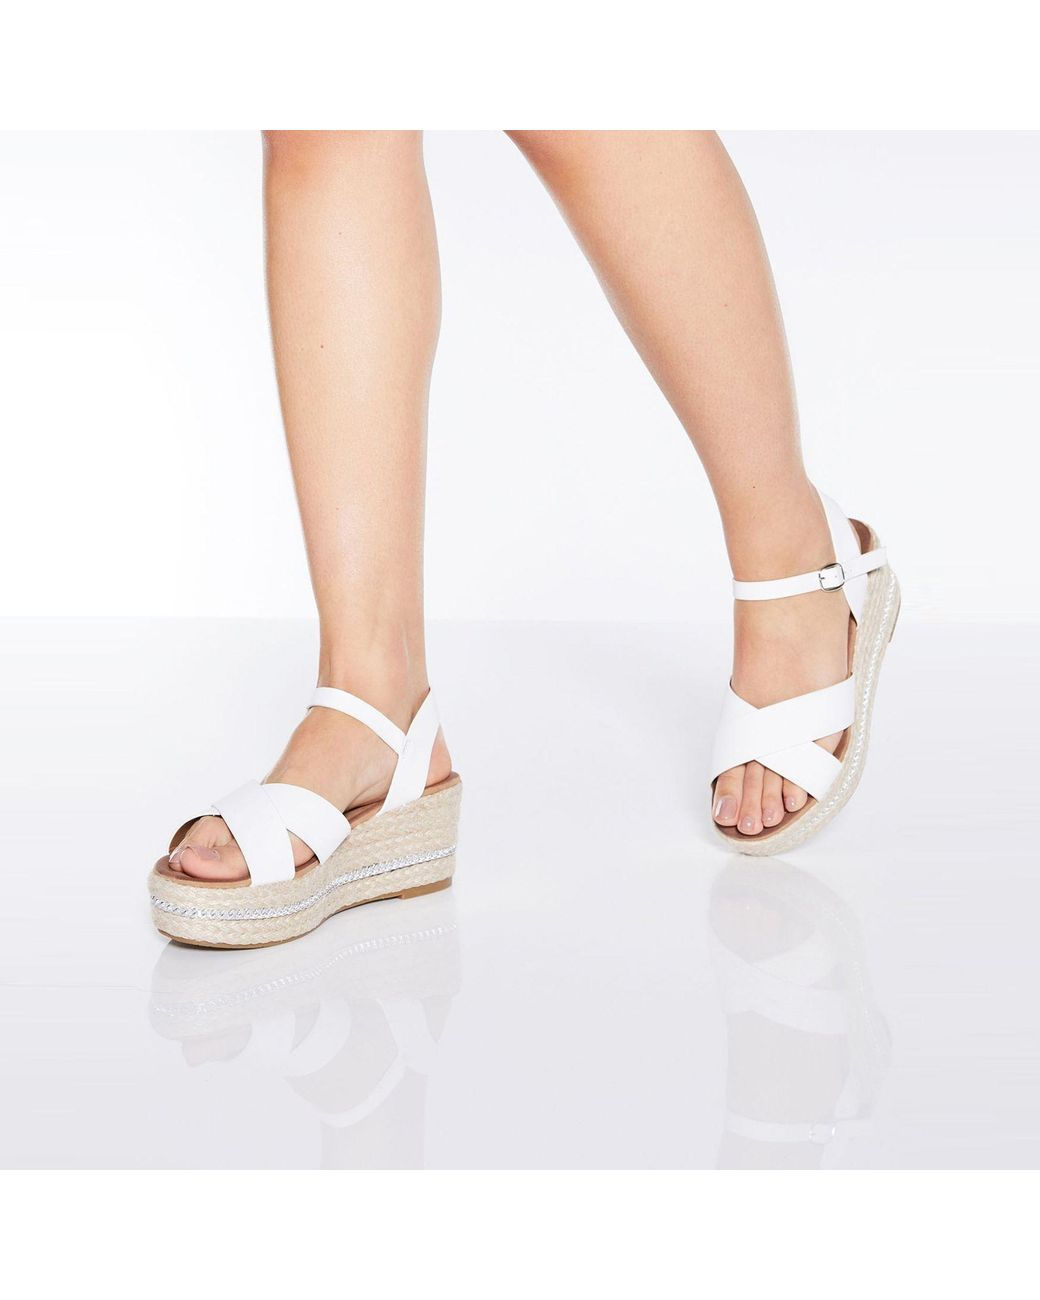 e060003ef0 Quiz White Strap Flatform Wedge Sandals in White - Lyst